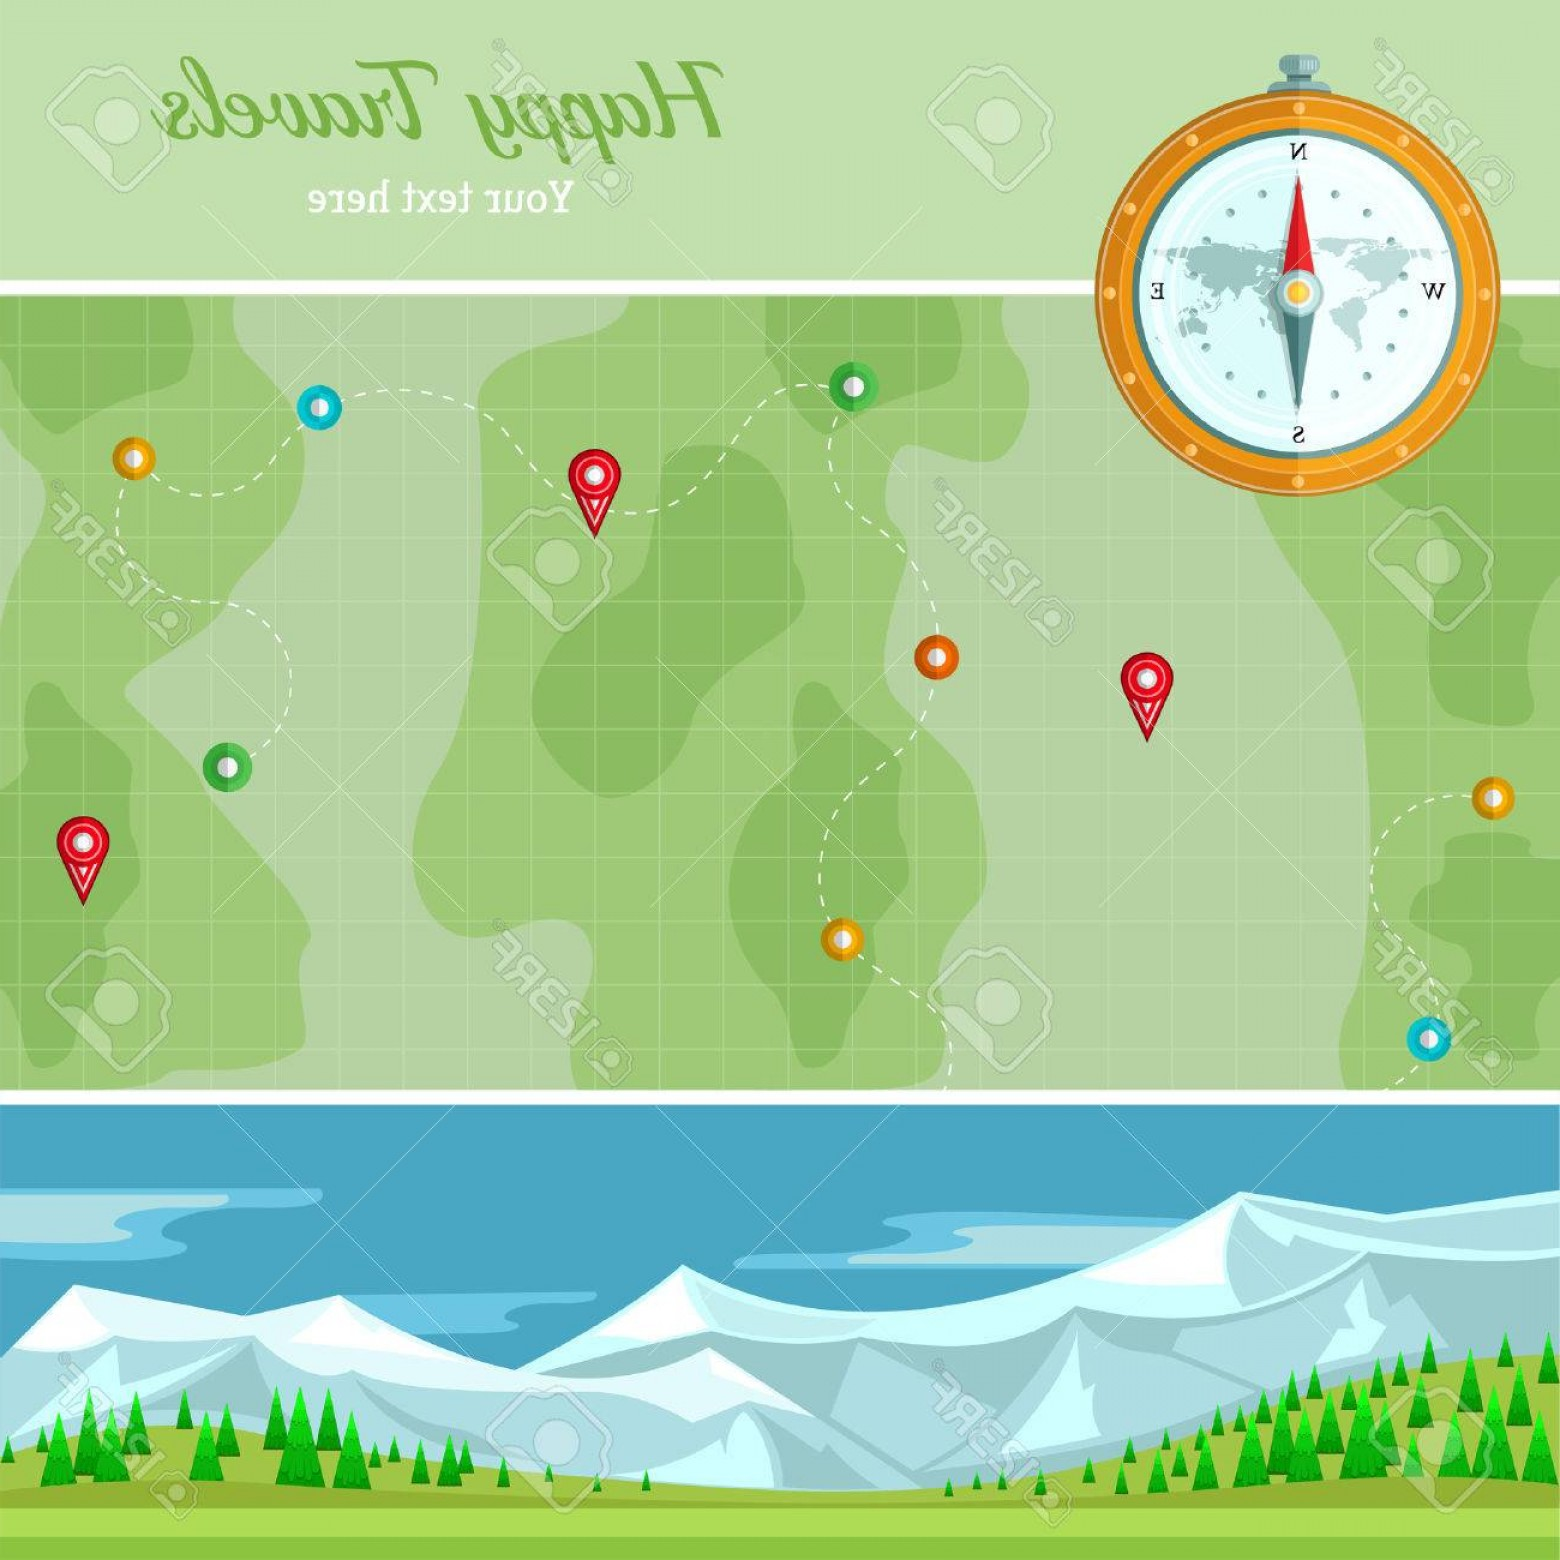 BG Vector Map: Photostock Vector Flat Background Vector Map With Mountains Landscape And Compass